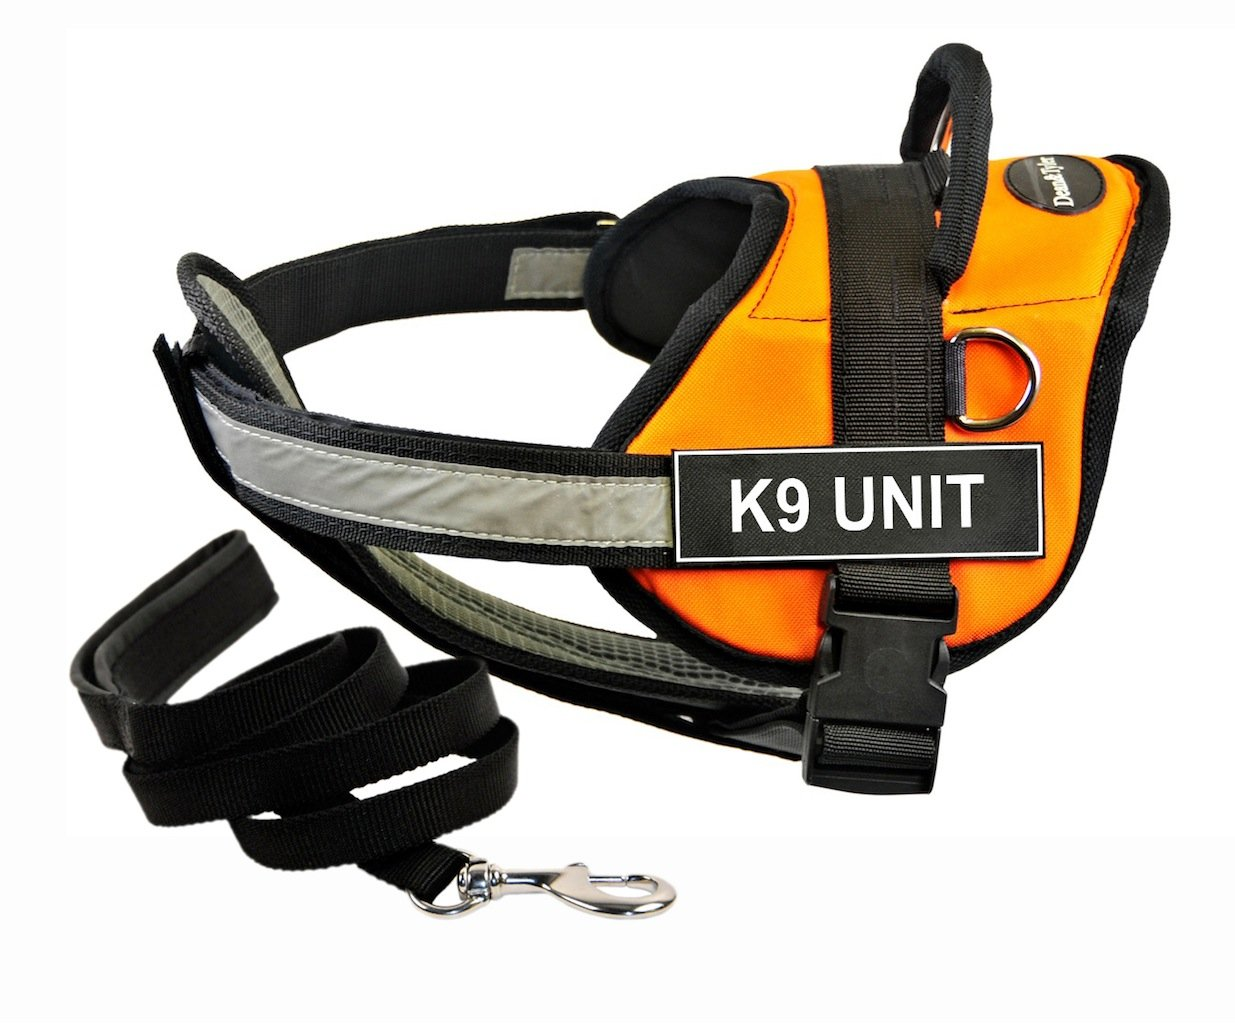 Dean & Tyler DT Works orange K9 UNIT Harness with Chest Padding, X-Small, and Black 6 ft Padded Puppy Leash.